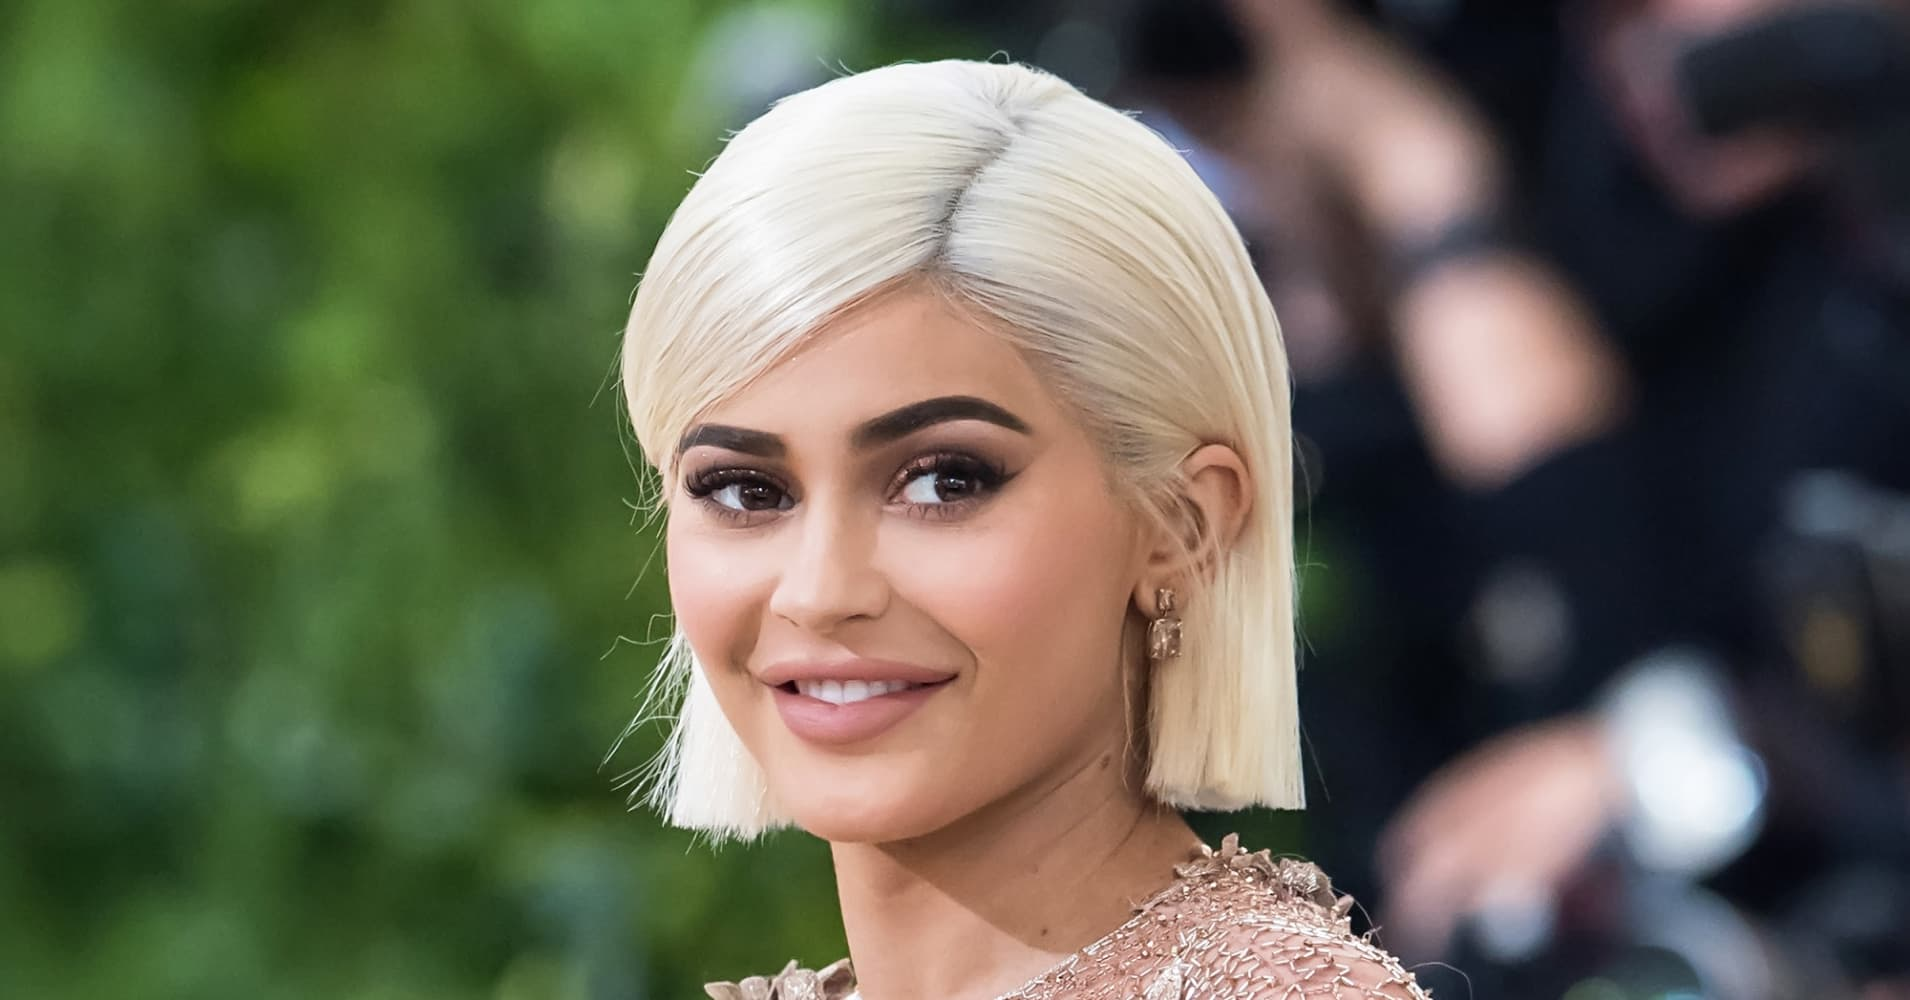 Kylie Jenner will be the youngest billionaire, beating even Zuckerberg